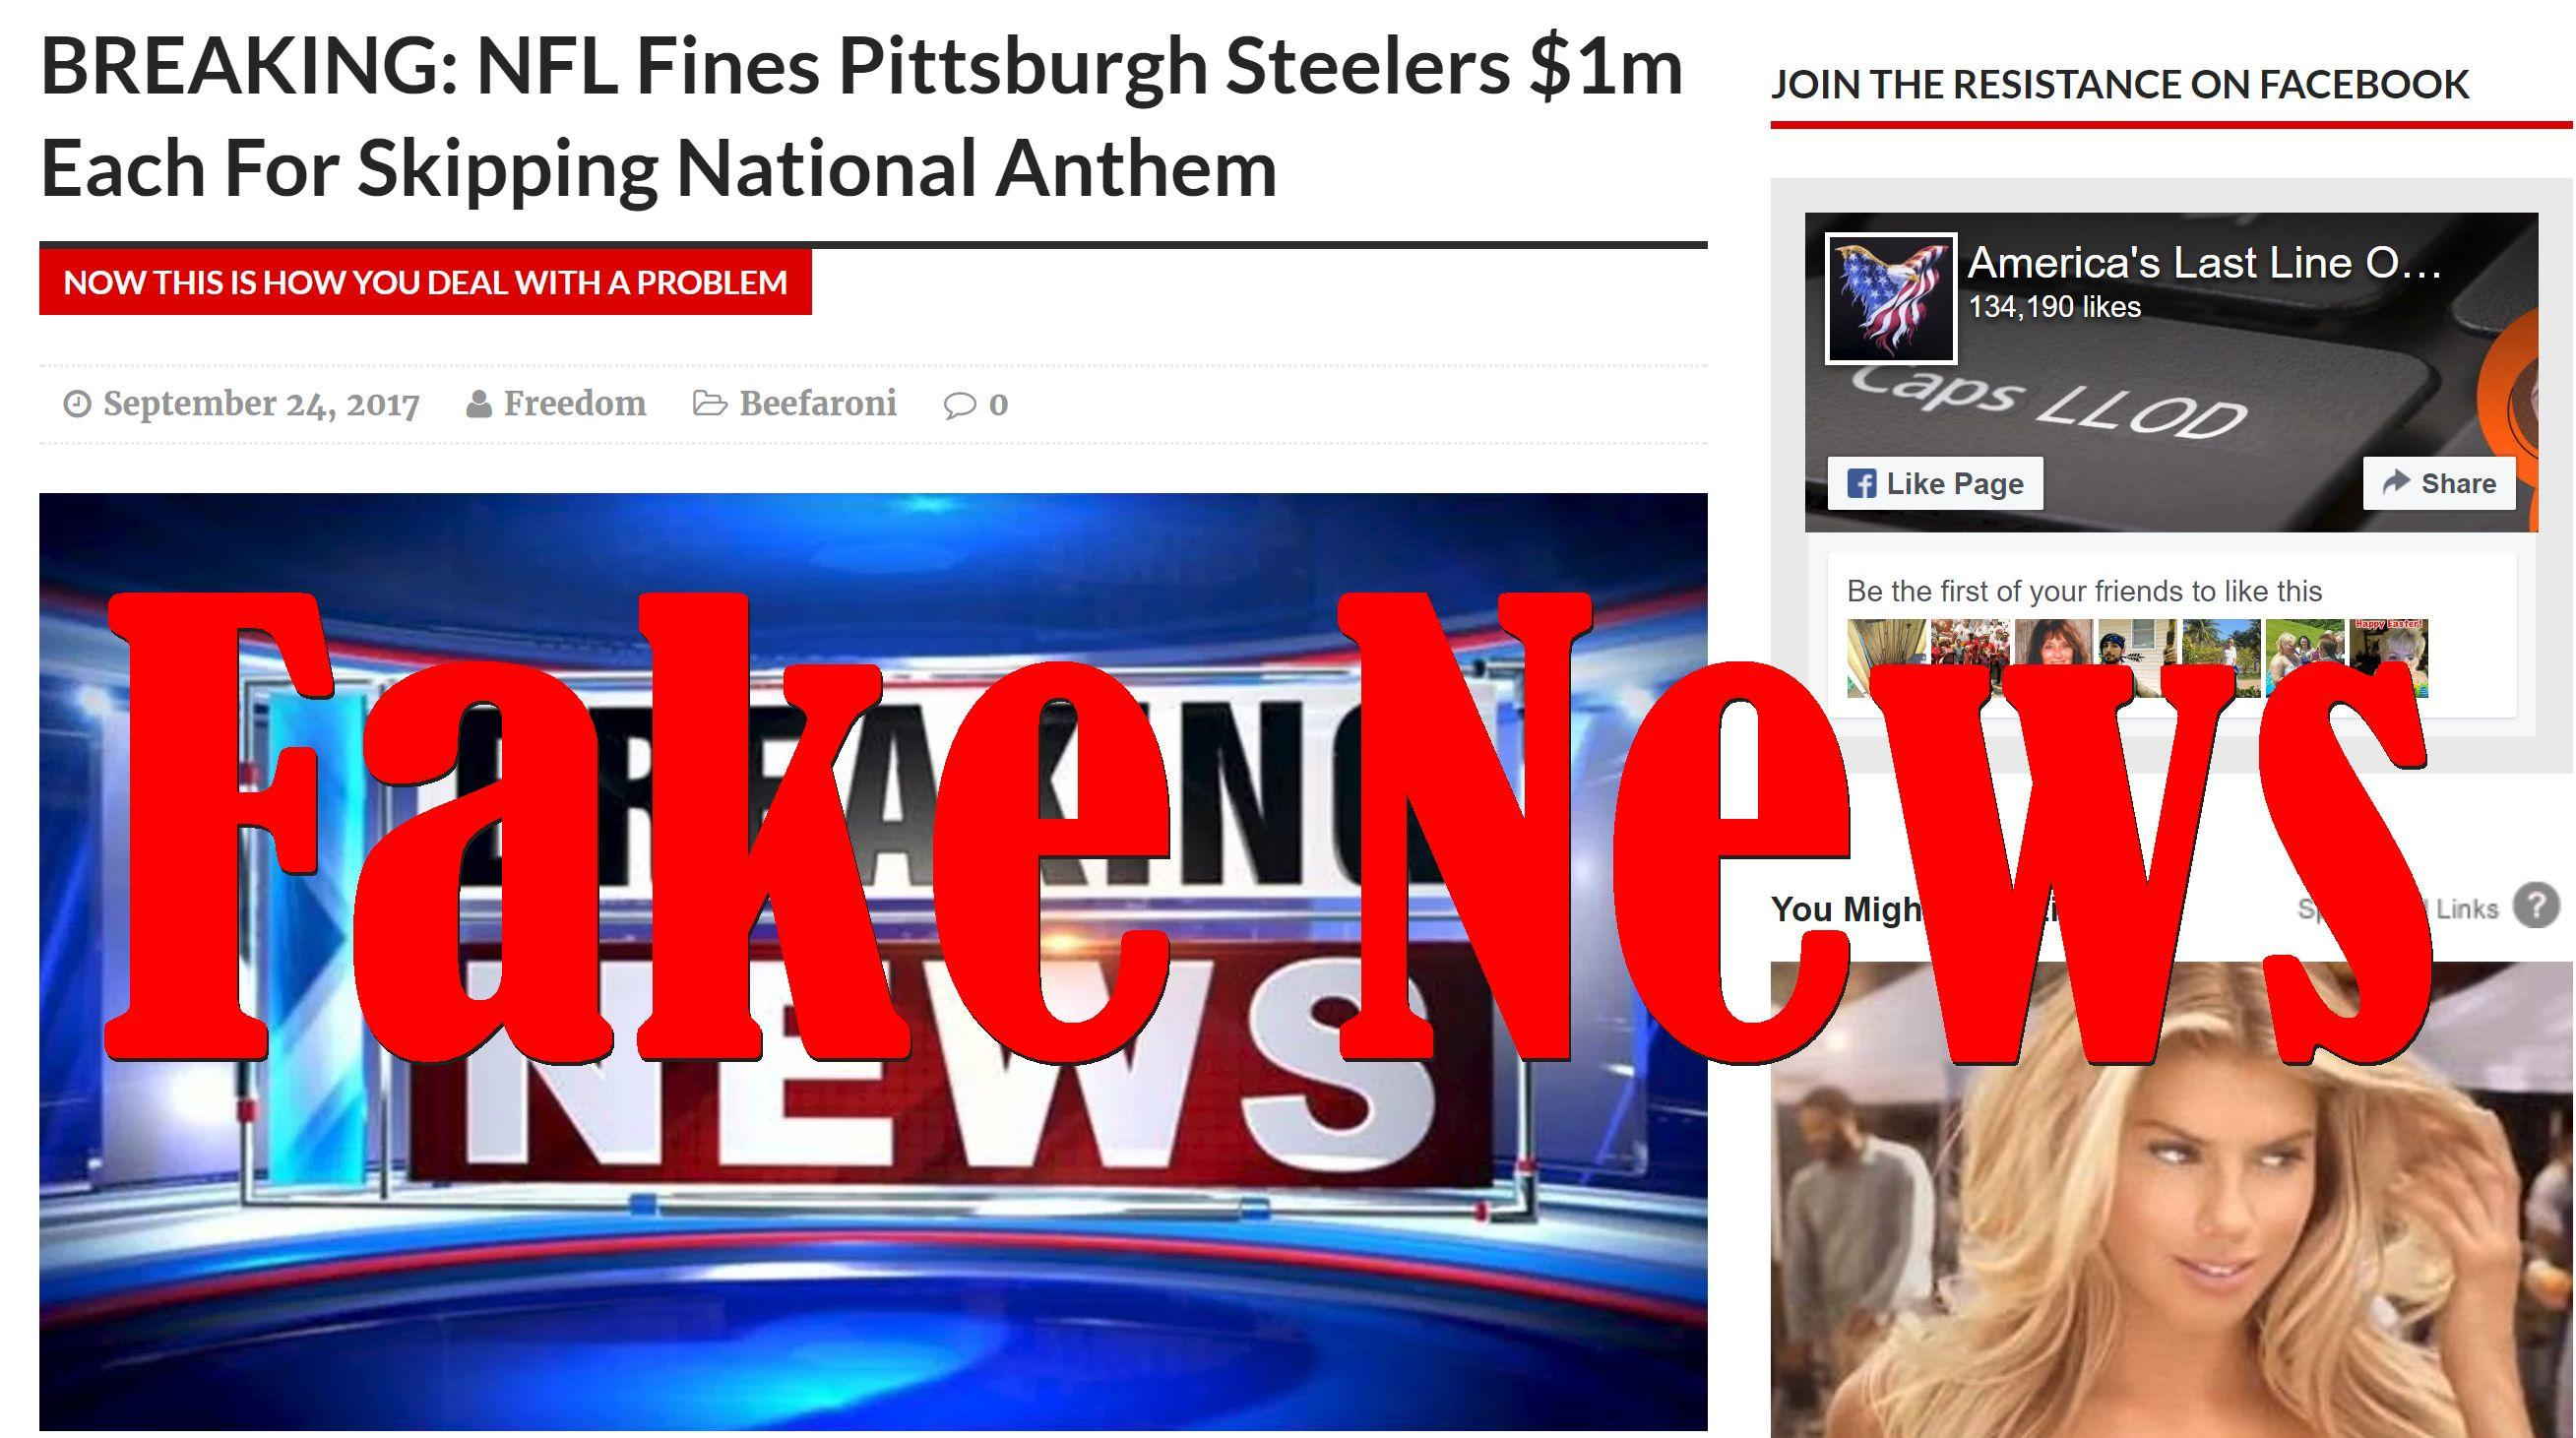 Fake News: NFL Did NOT Fine Pittsburgh Steelers $1m Each For Skipping National Anthem